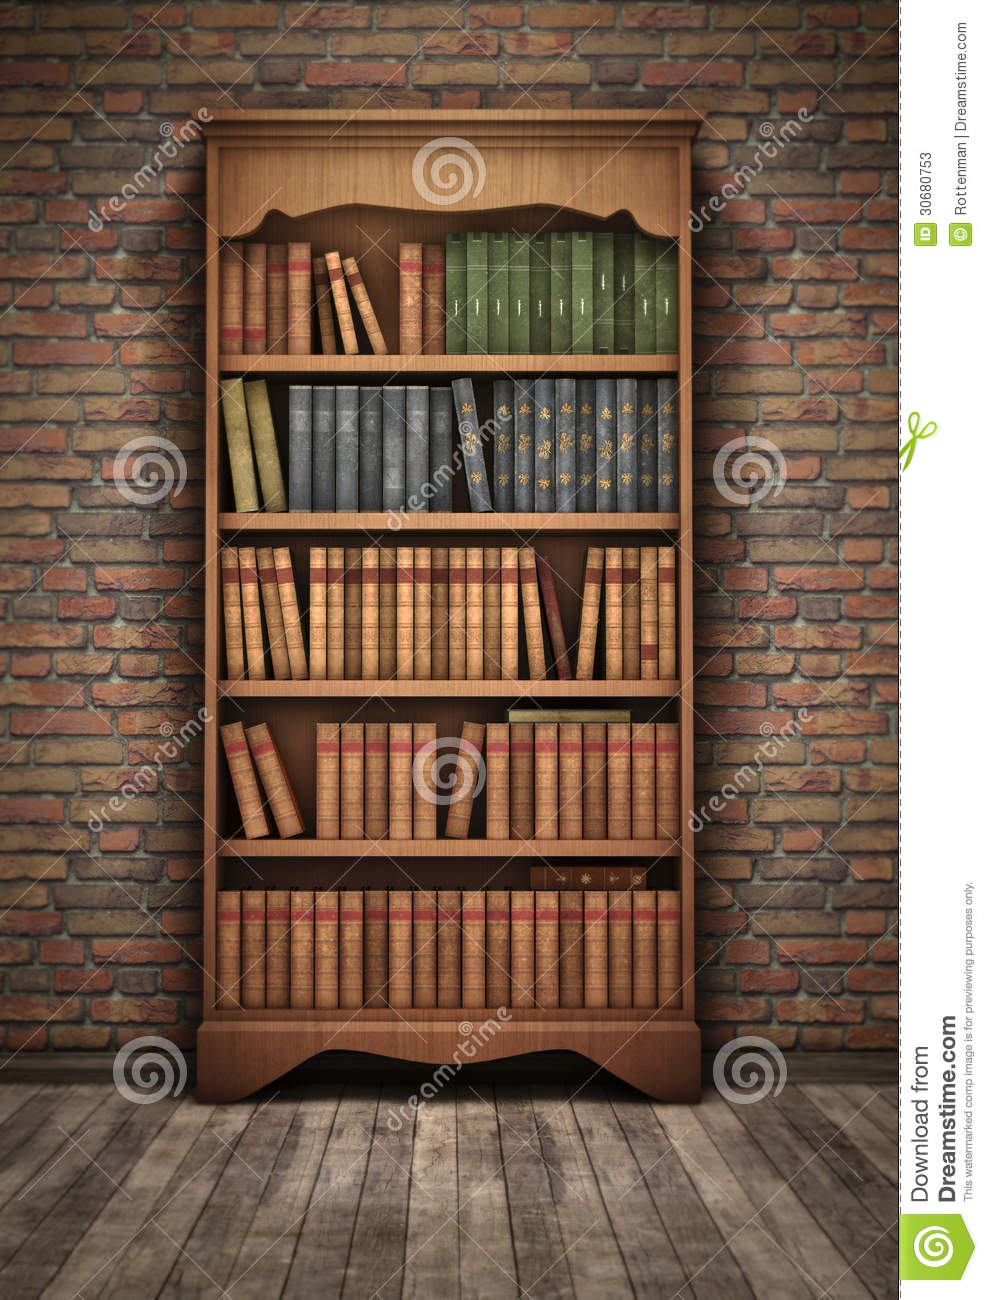 Old bookshelf in room stock illustration. Illustration of information - 30680753